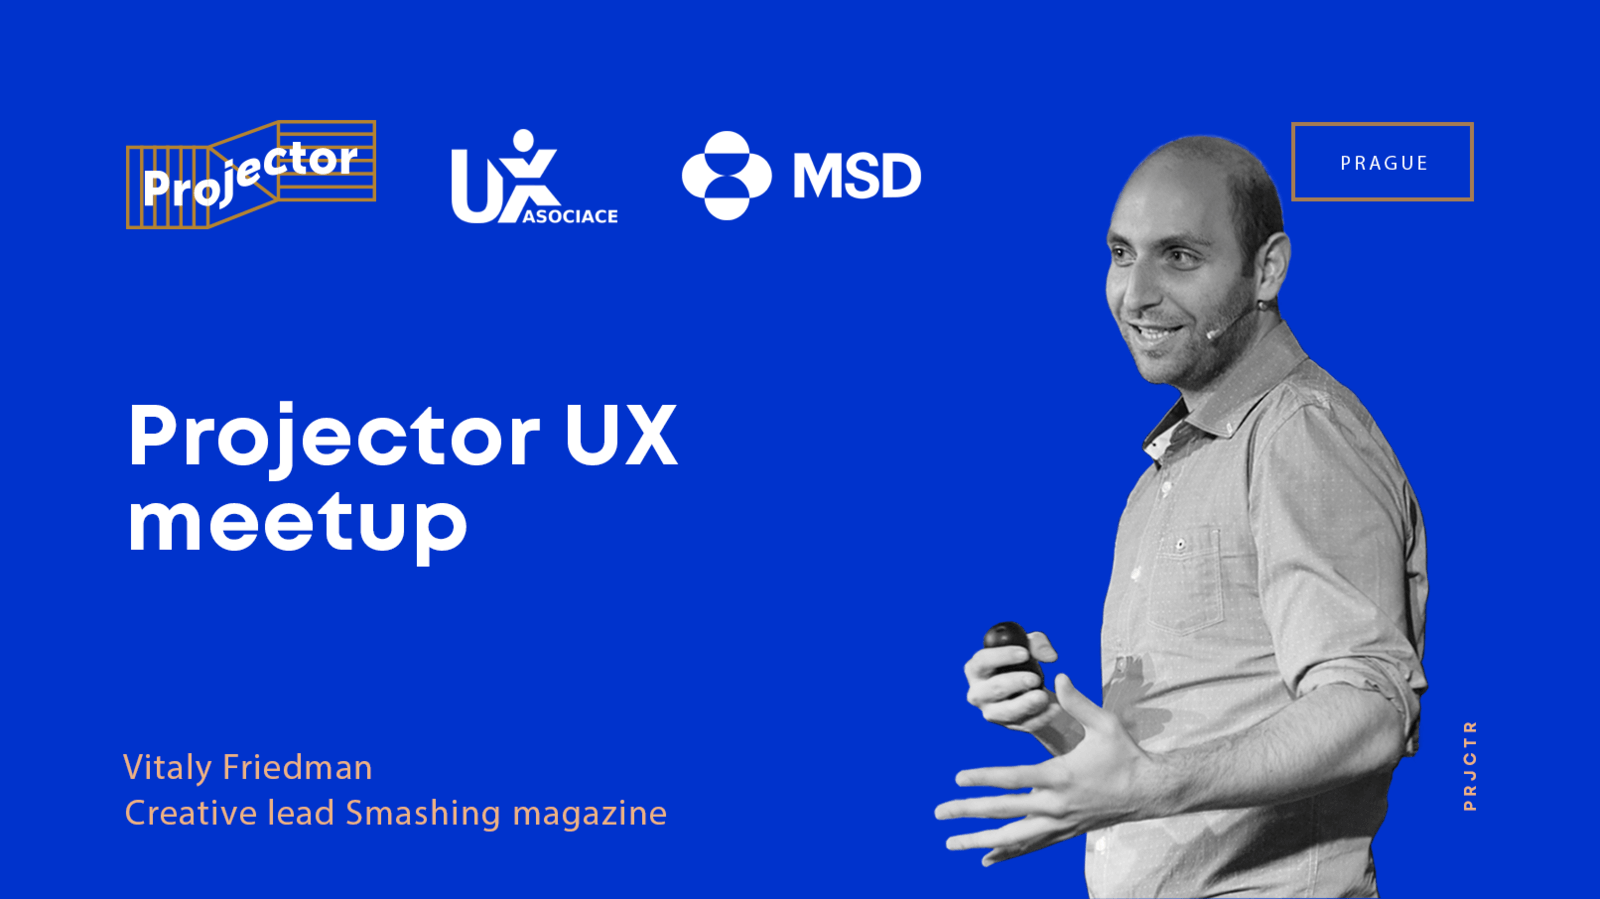 UX meetup in Prague